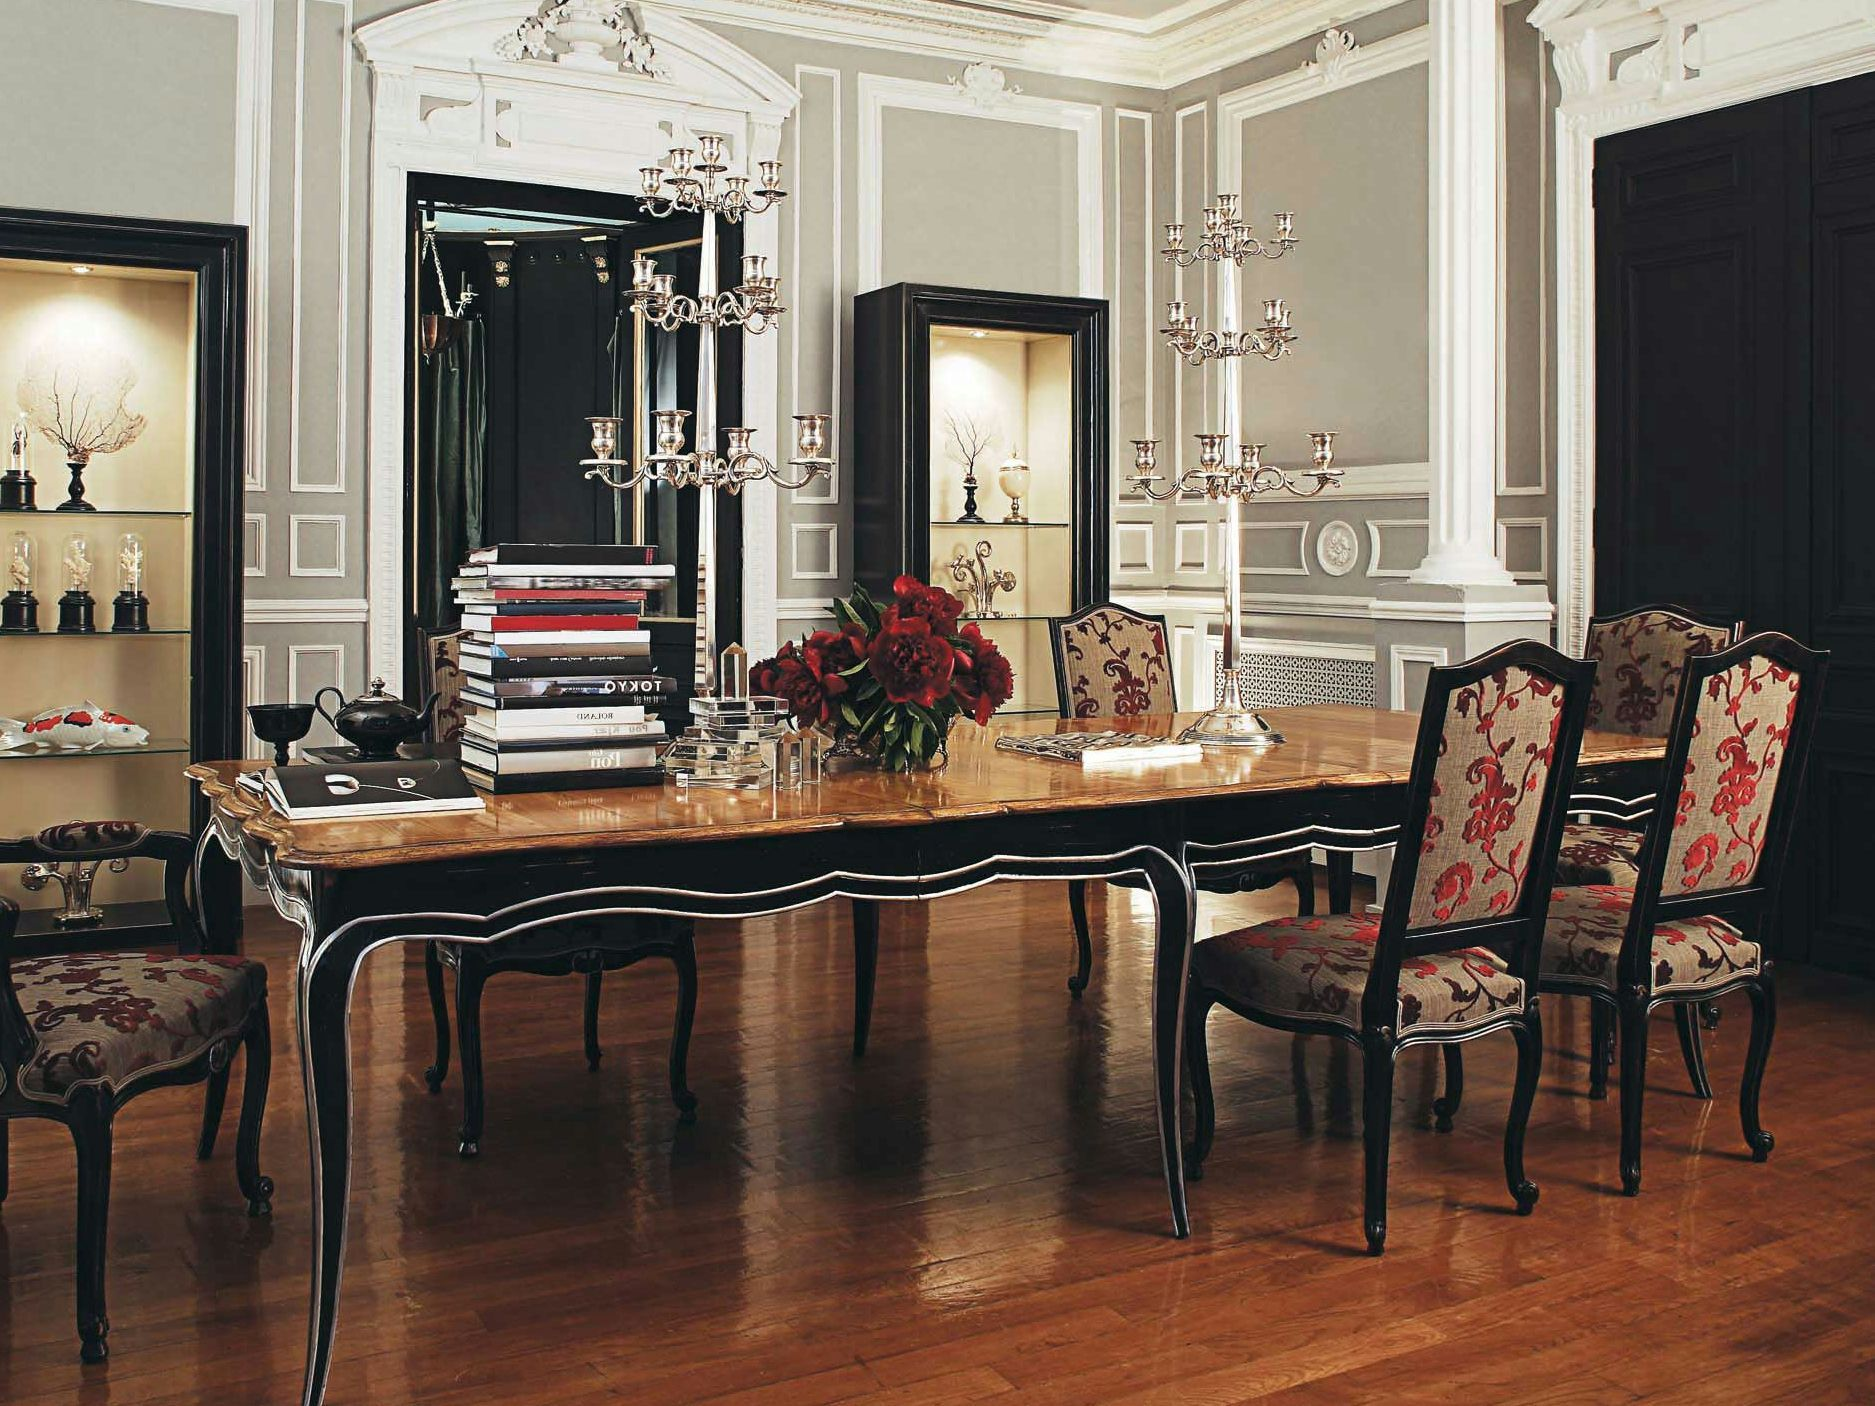 Startling classical roche bobois dining chairs design ideas